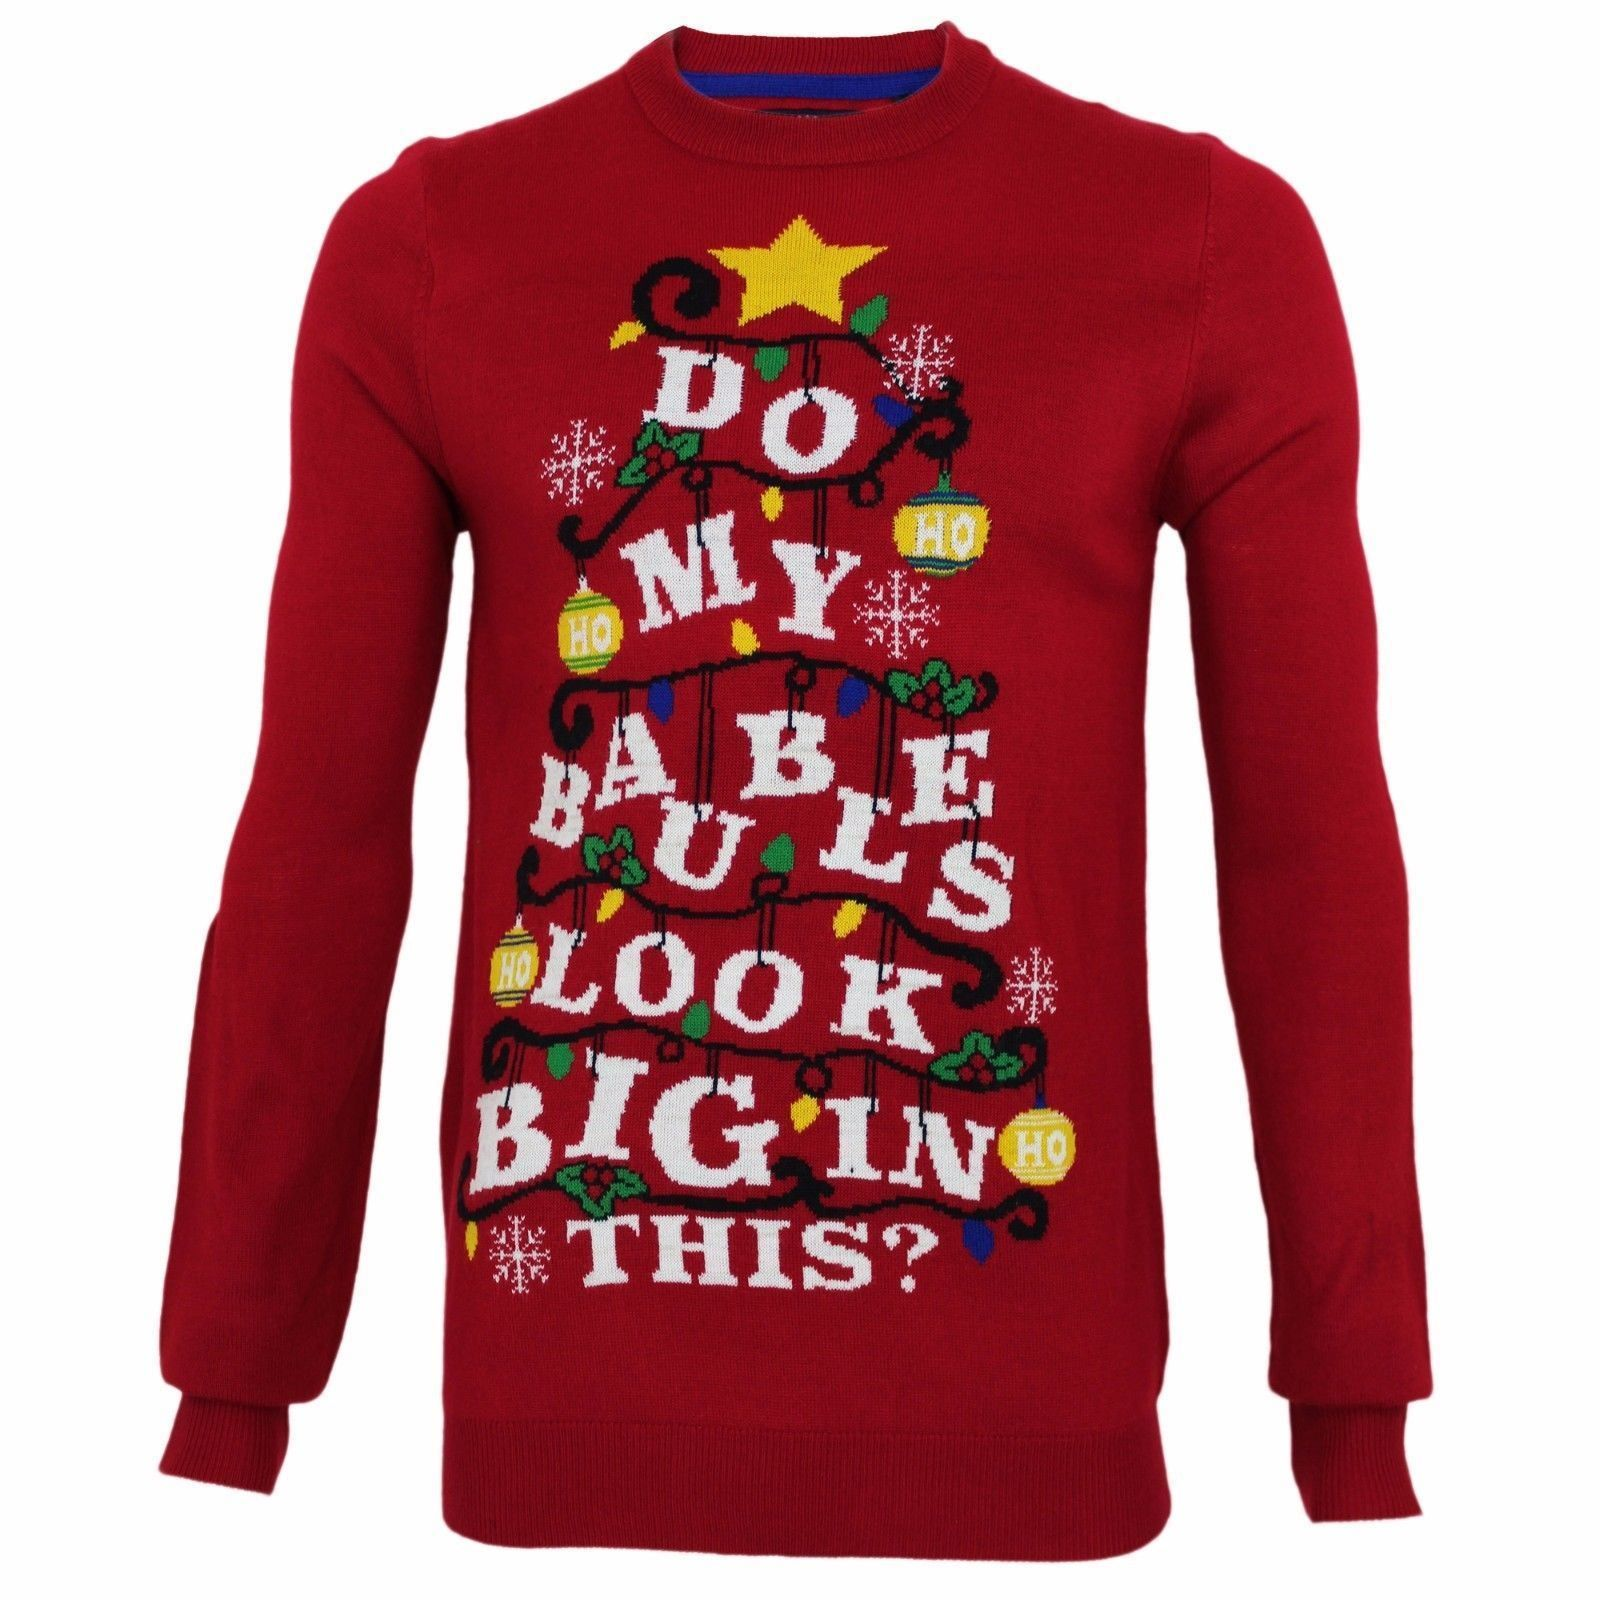 15 Christmas Jumpers You Wont Feel Ridiculous In images